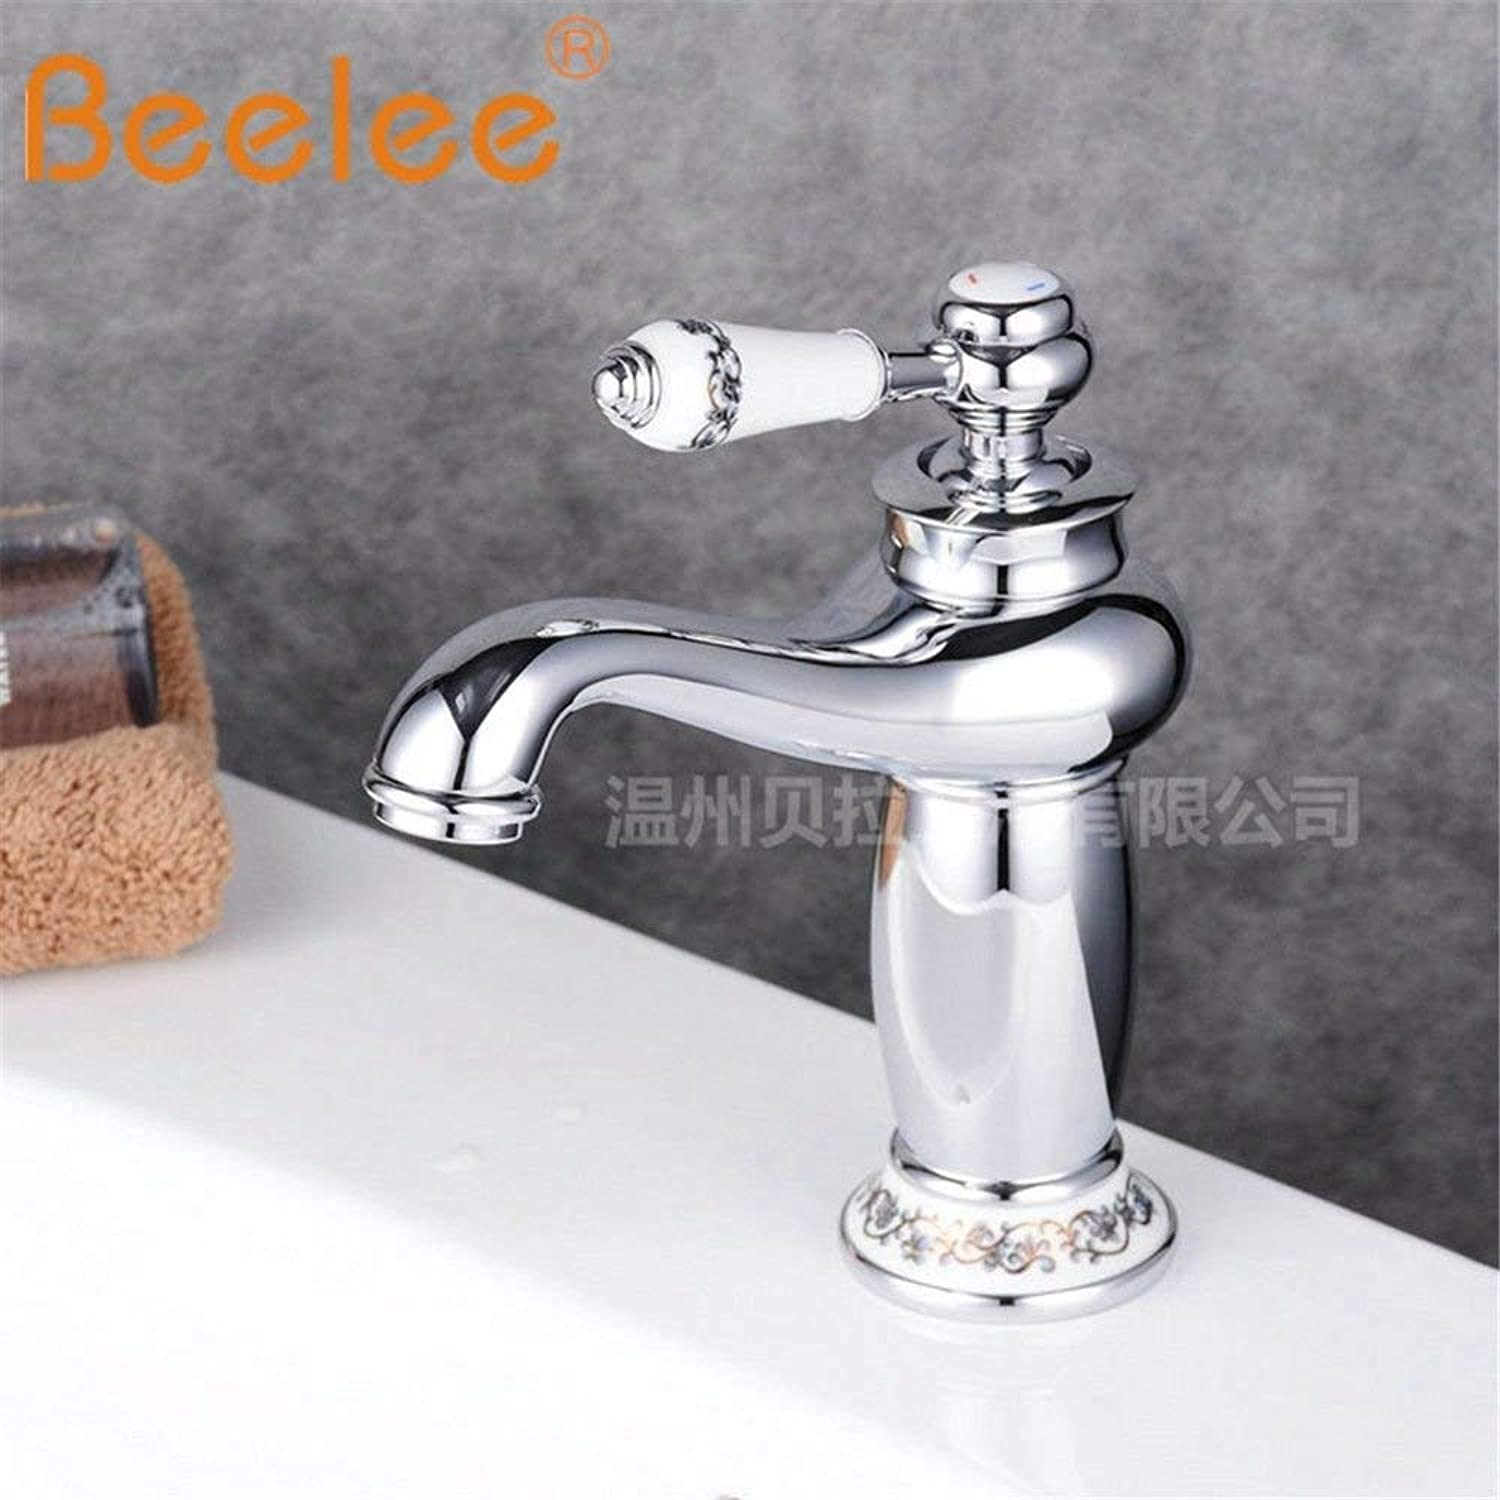 NANIH Home Sink Mixer Tap Bathroom Kitchen Basin Tap Leakproof Save Water Retro Minimalist Ceramic Brass Hot And Cold Single Handle Single Hole